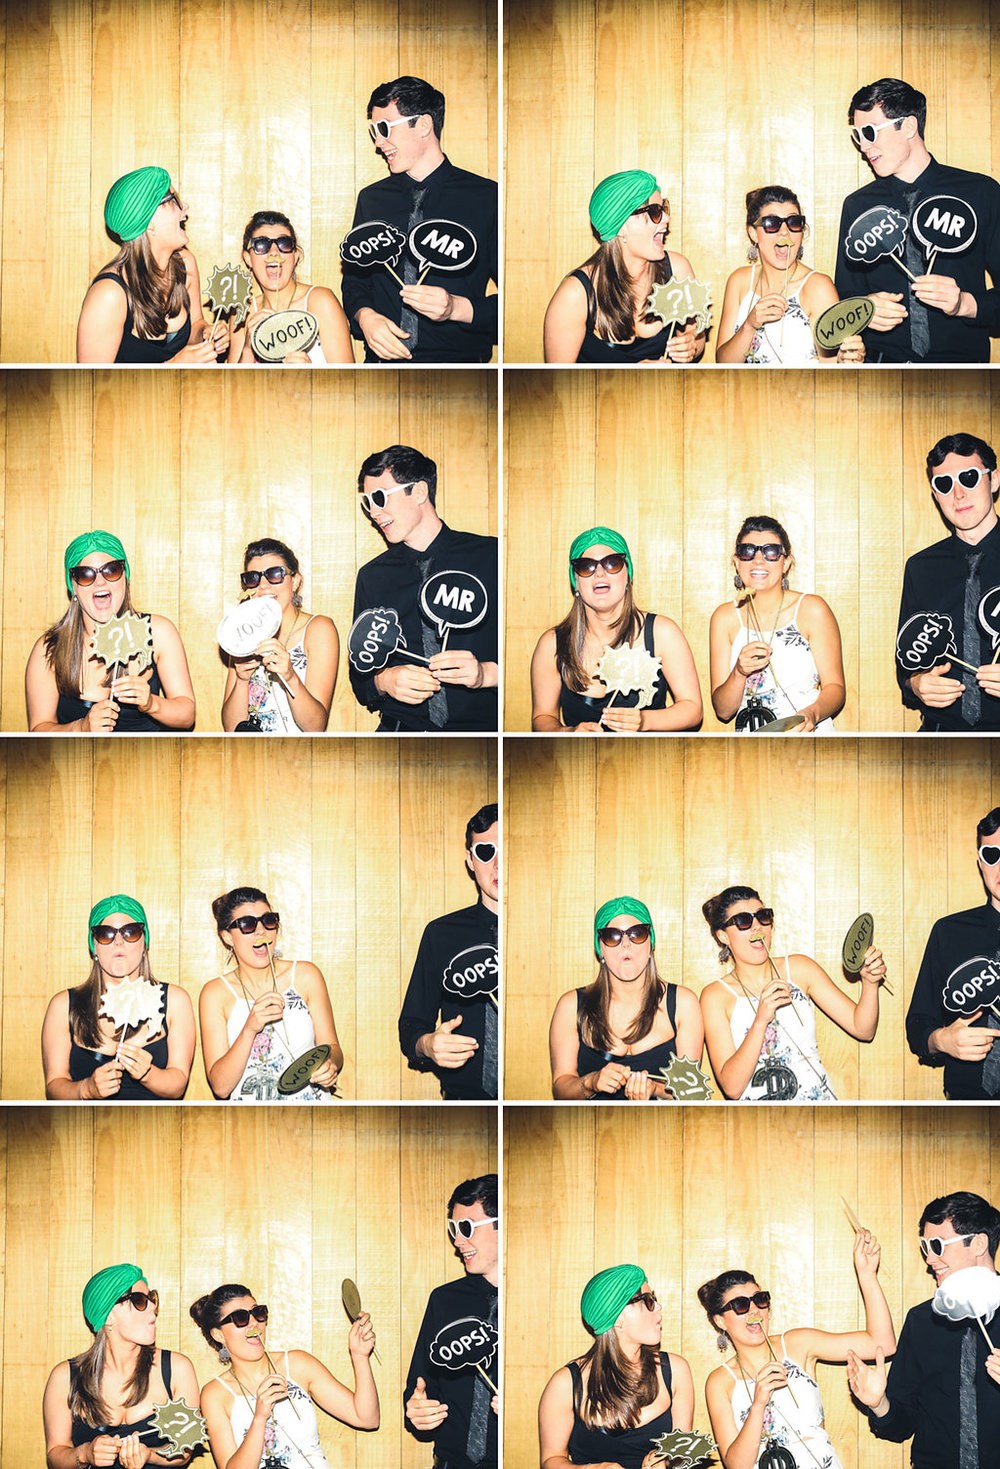 photobooth-011.jpg